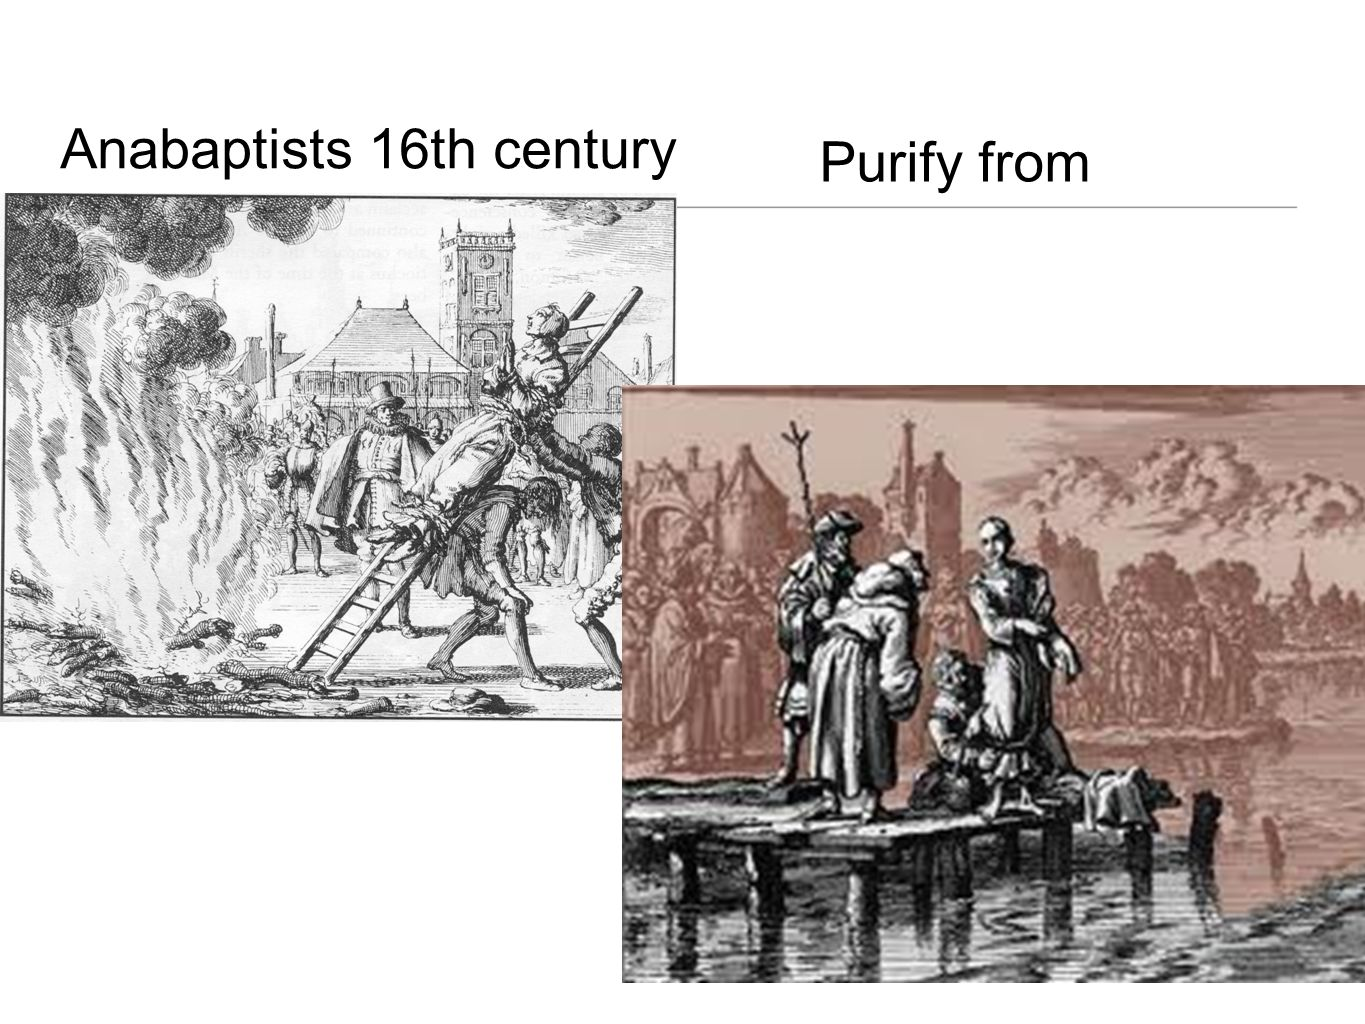 Anabaptists 16th century